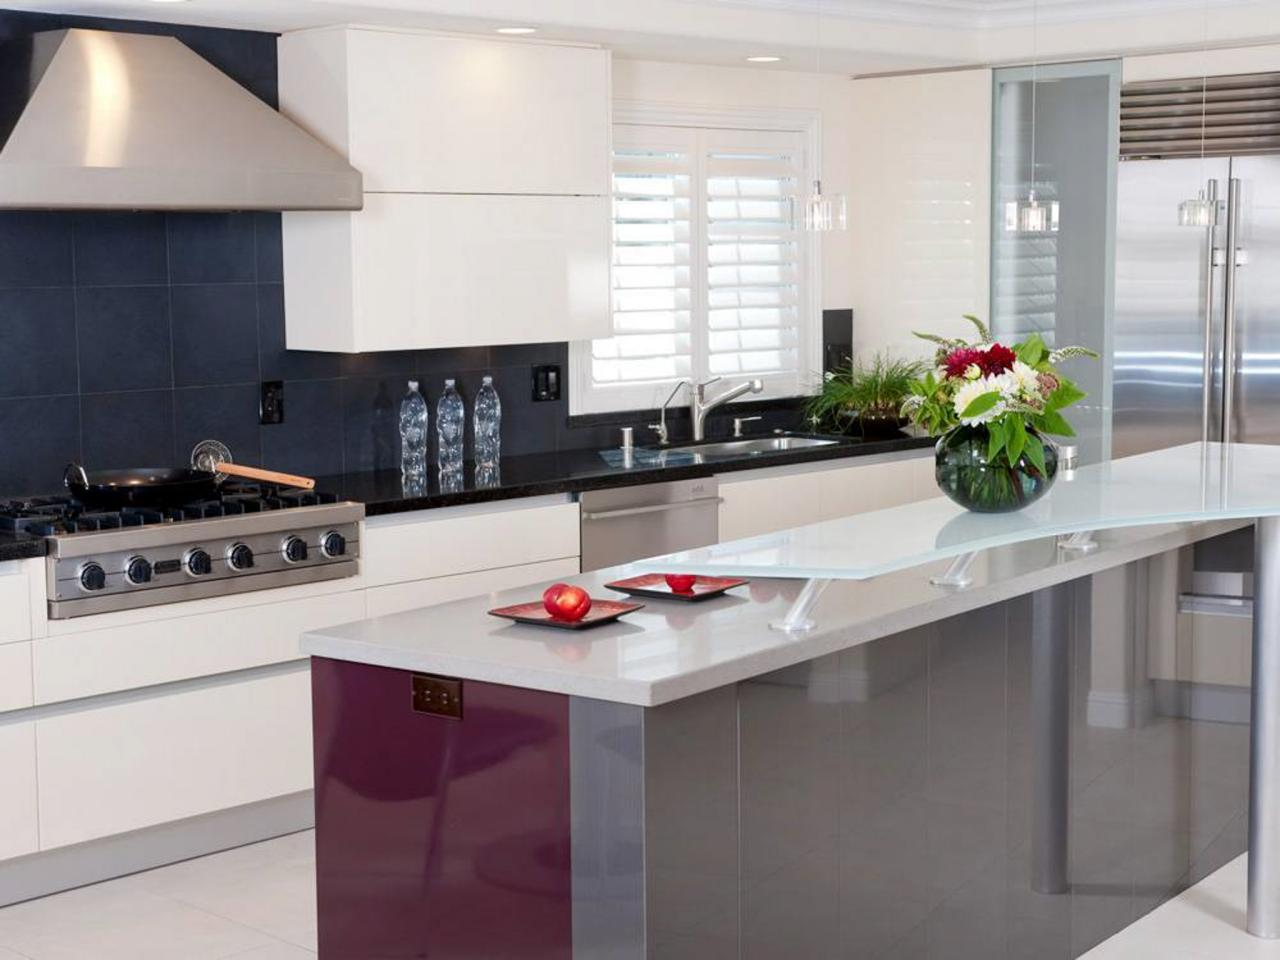 Attirant Modern Kitchen Design